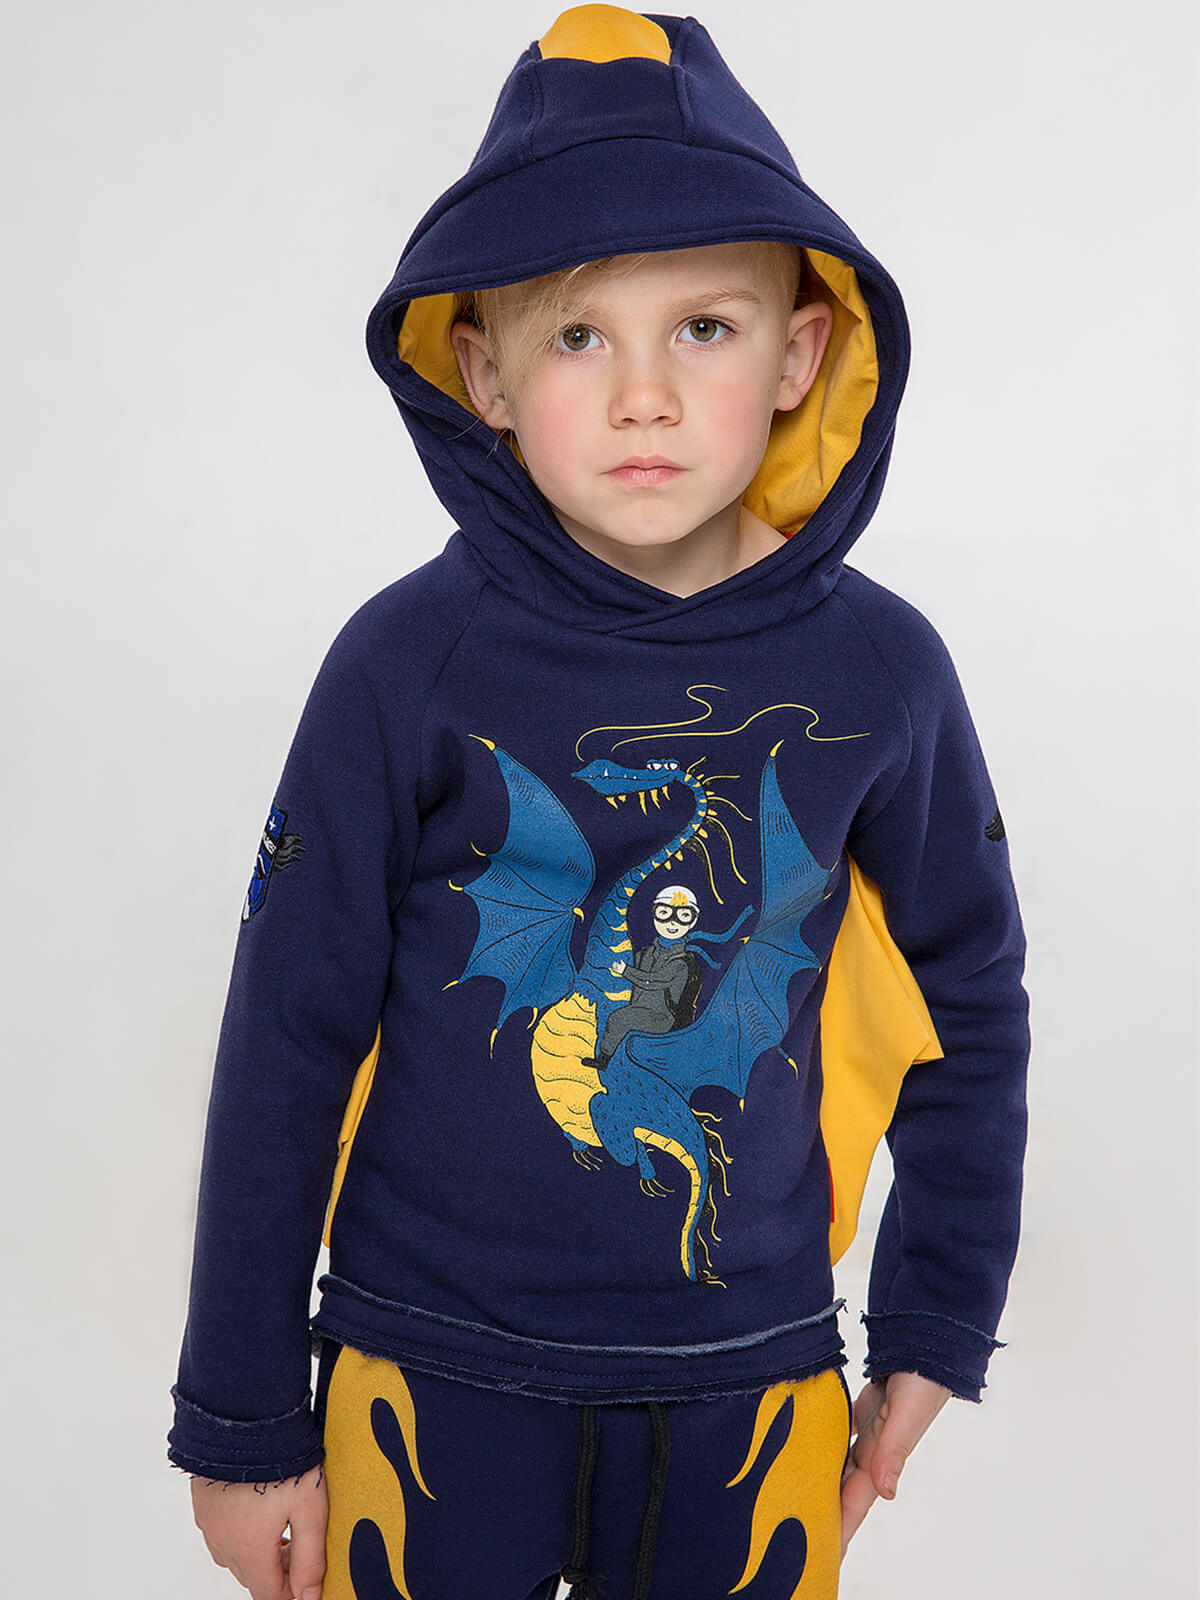 Kids Hoodie Dragon. Color dark blue. Hoodie: unisex, well suited for both boys and girls.